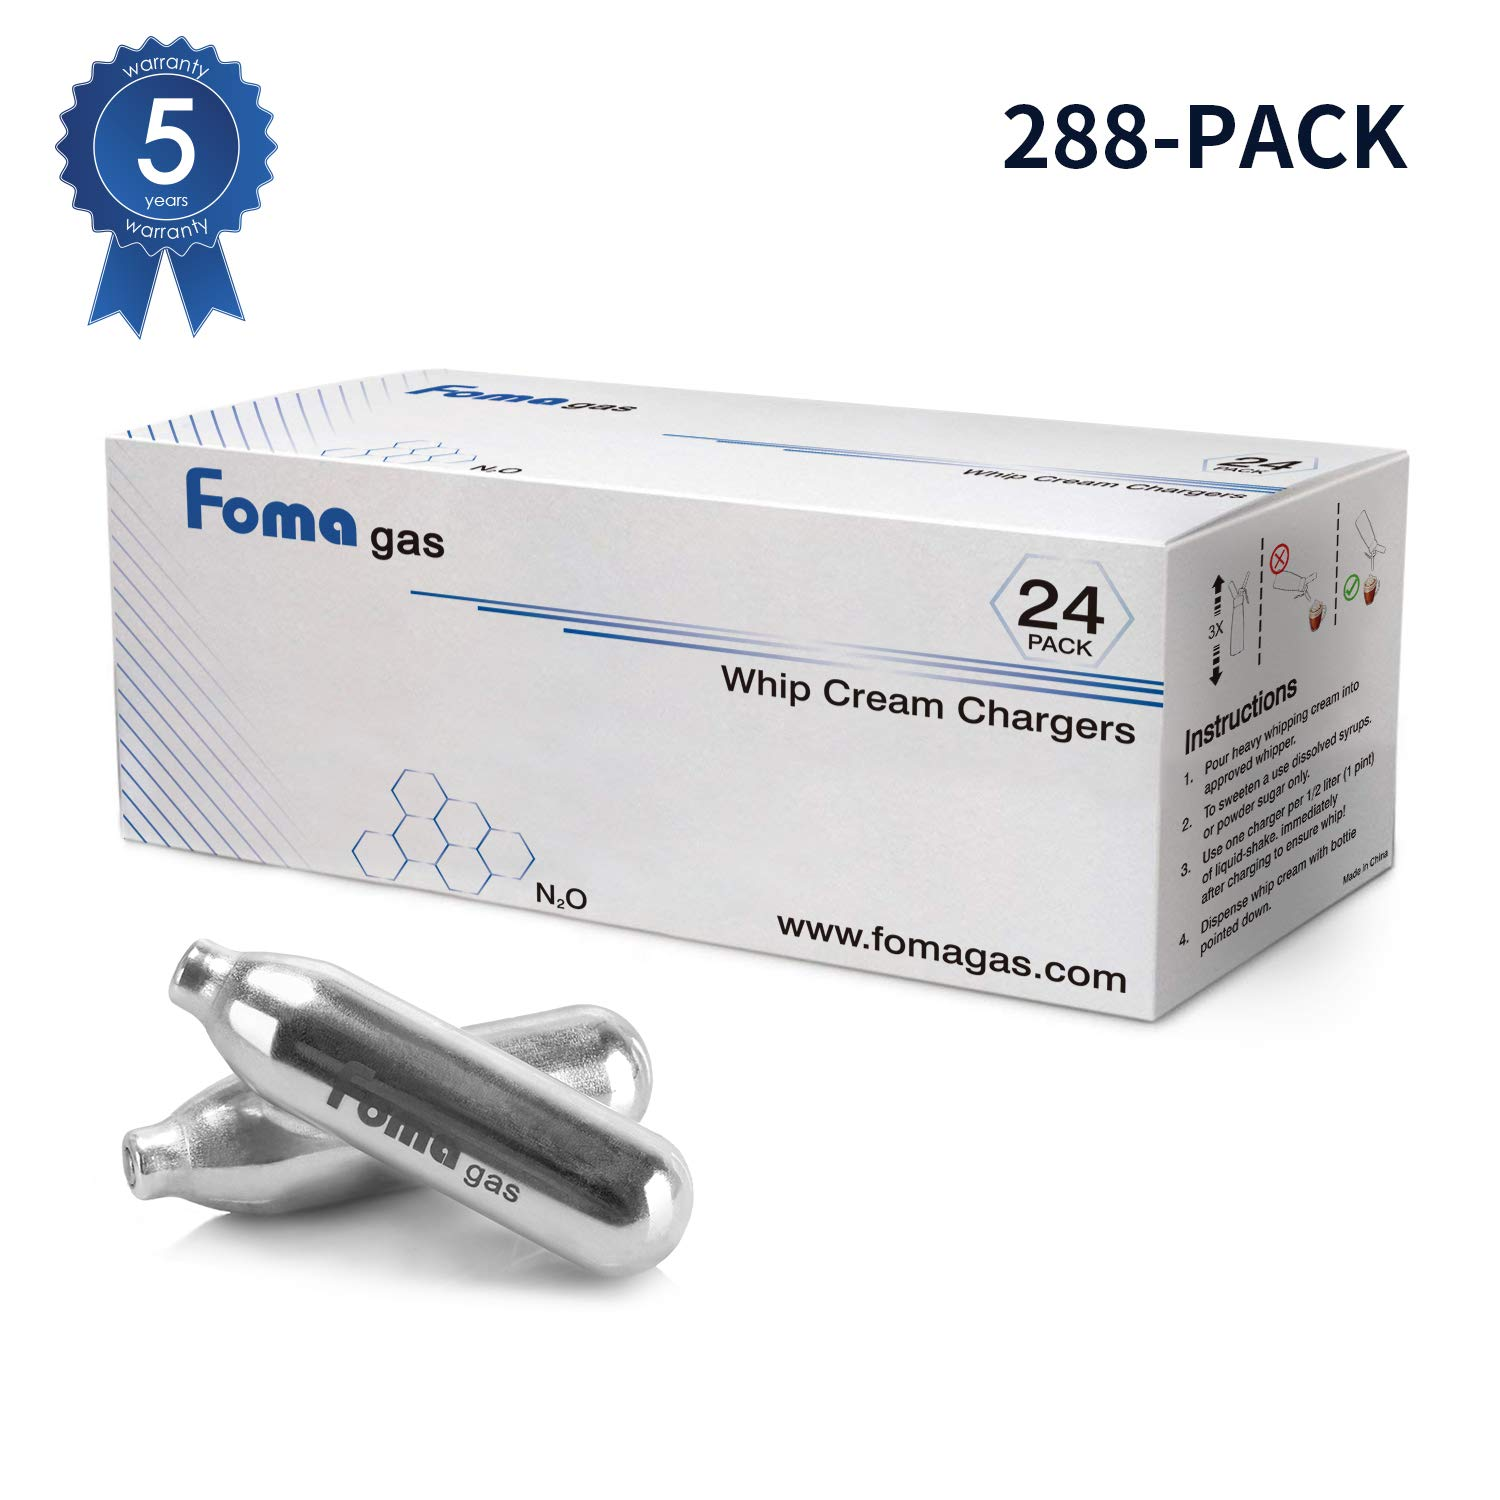 Foma Gas Pure Food Grade whipped cream chargers N2O Whip Cream Chargers, Pack of 288